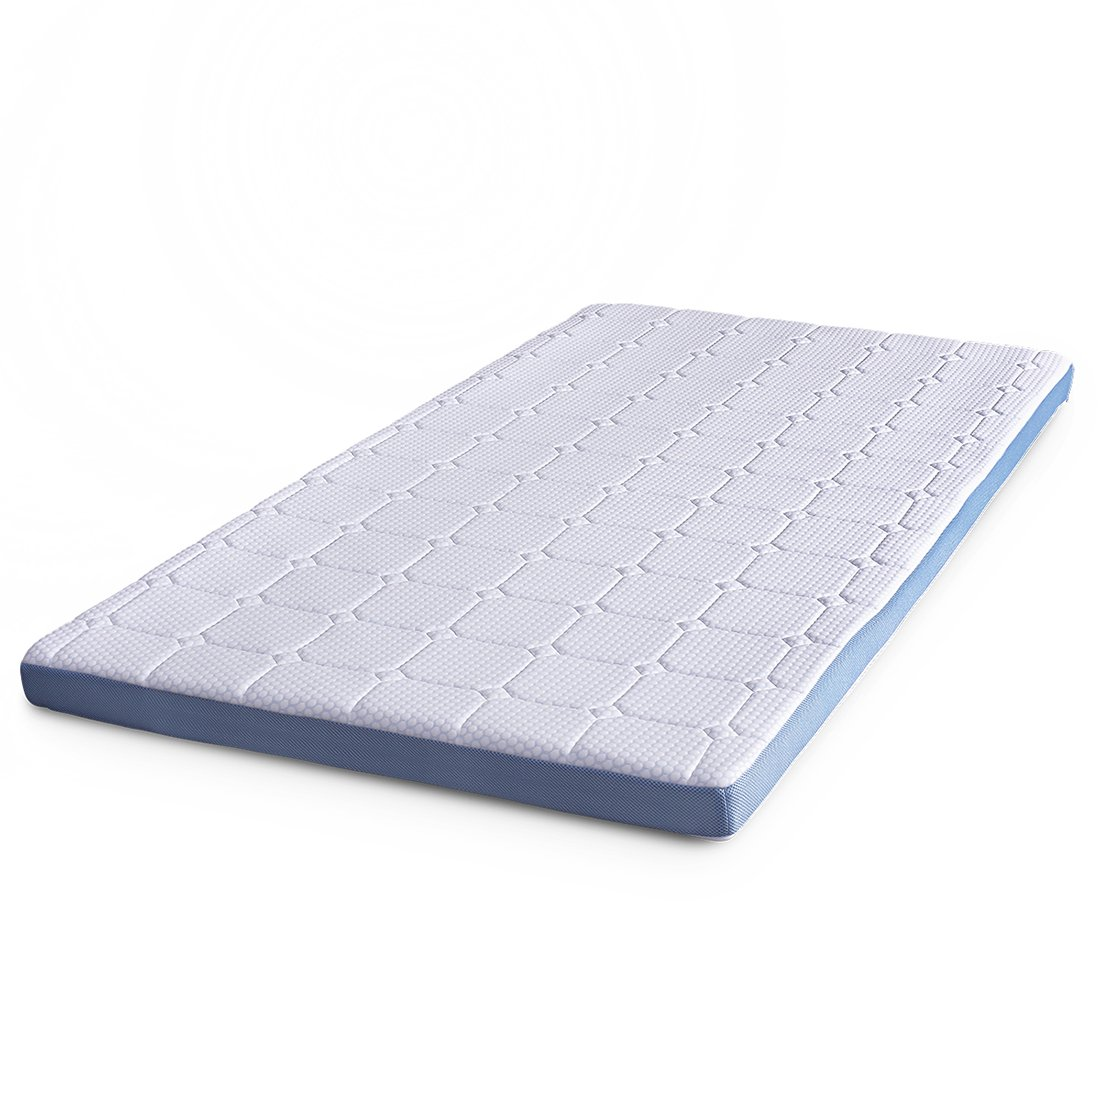 Cr 3-inch Foam Mattress Topper with Ultra Soft Cover, King Size, 75.5'' x 79''